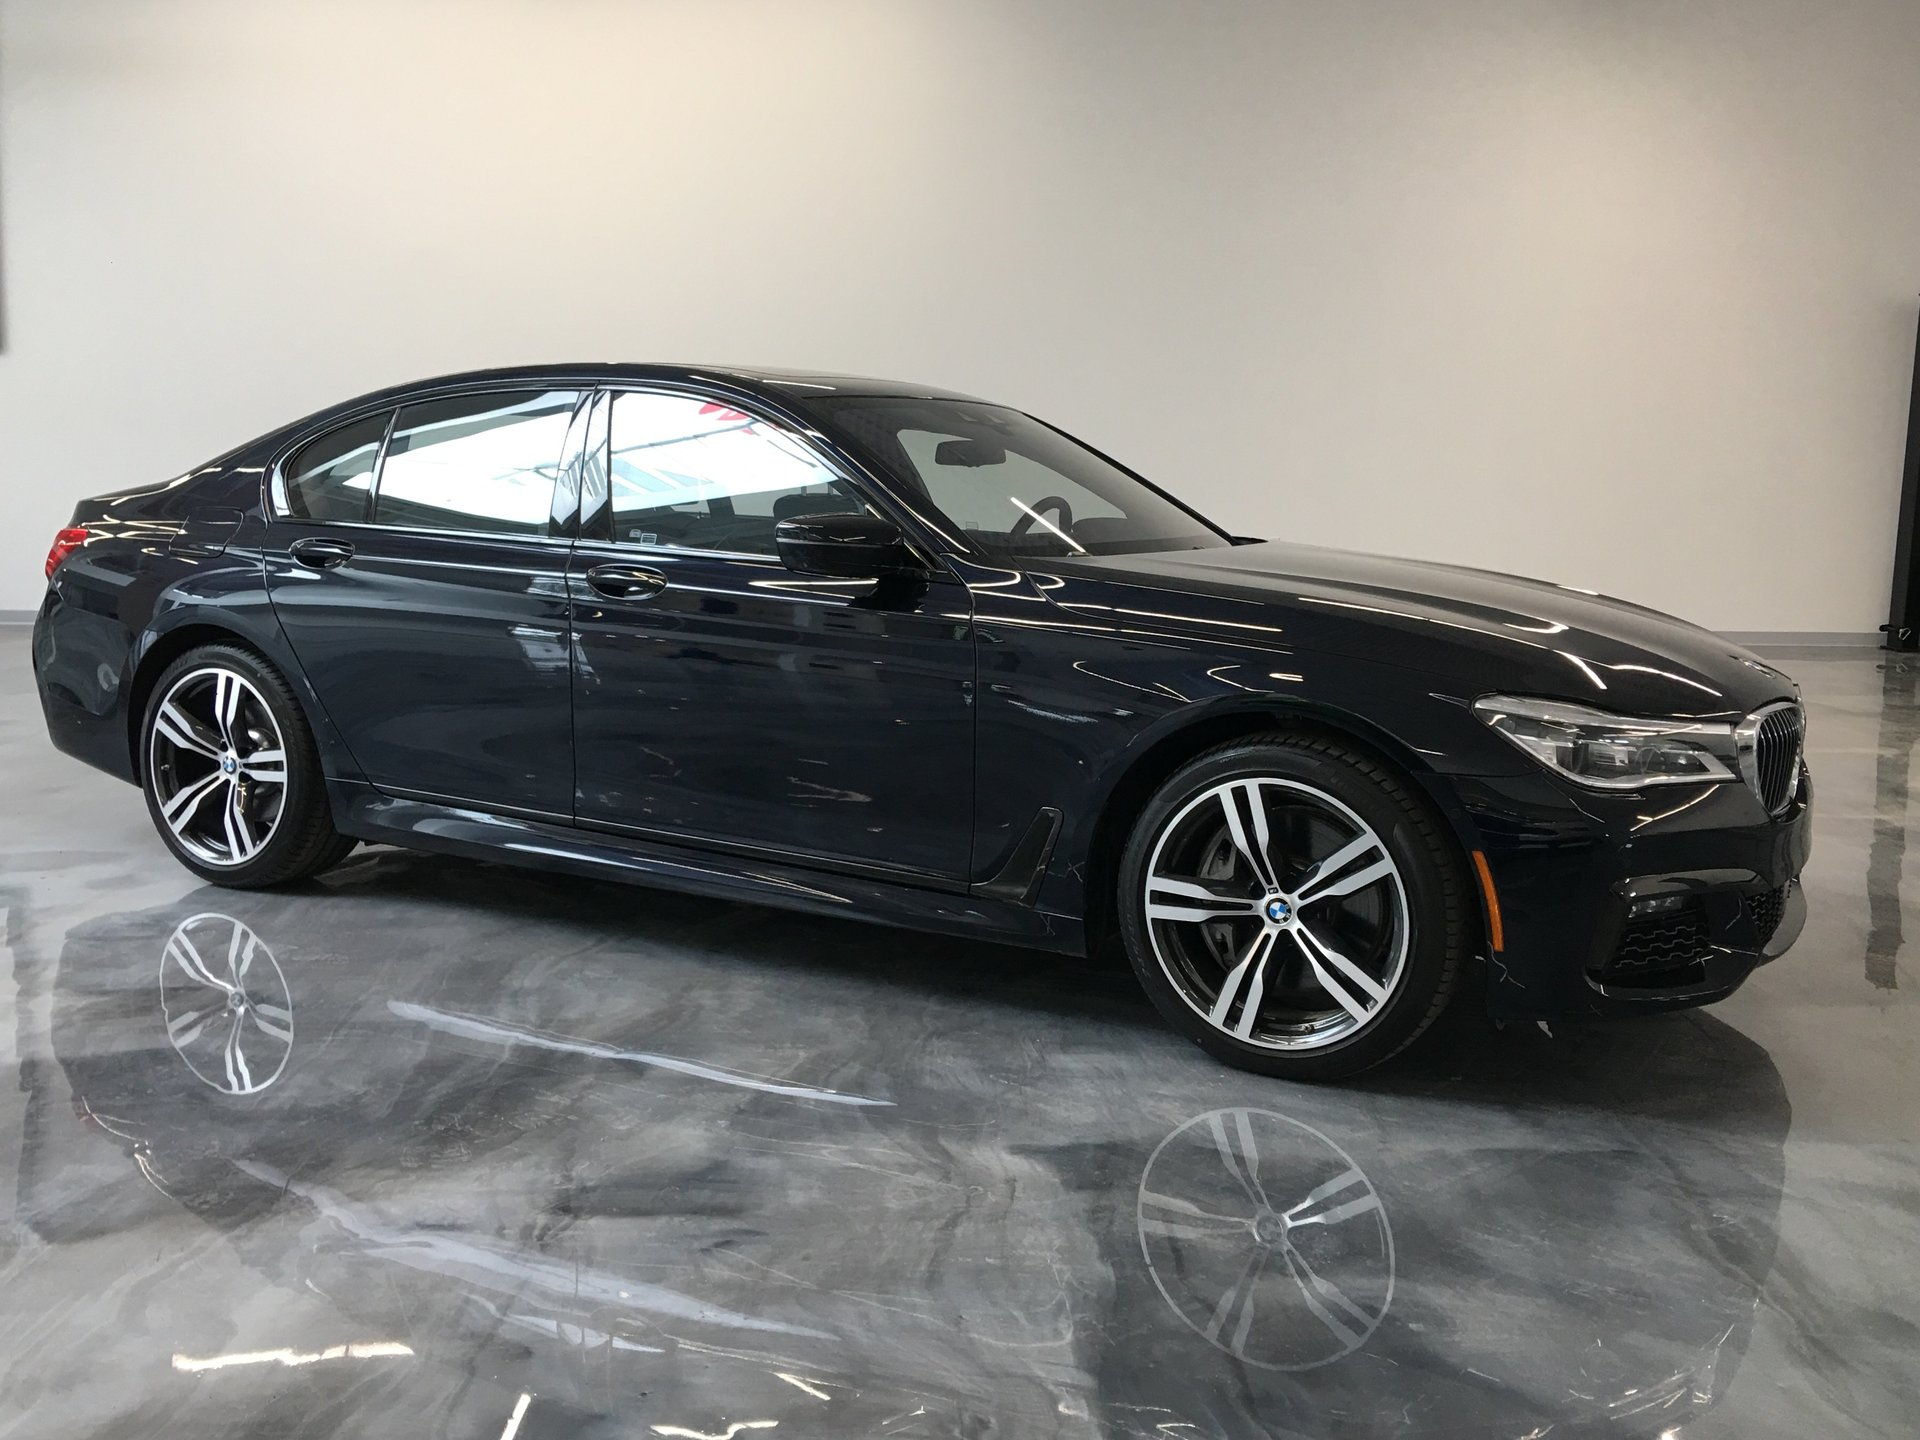 2018 Bmw 750i Xdrive Executive Package For Sale 89300 Mcg